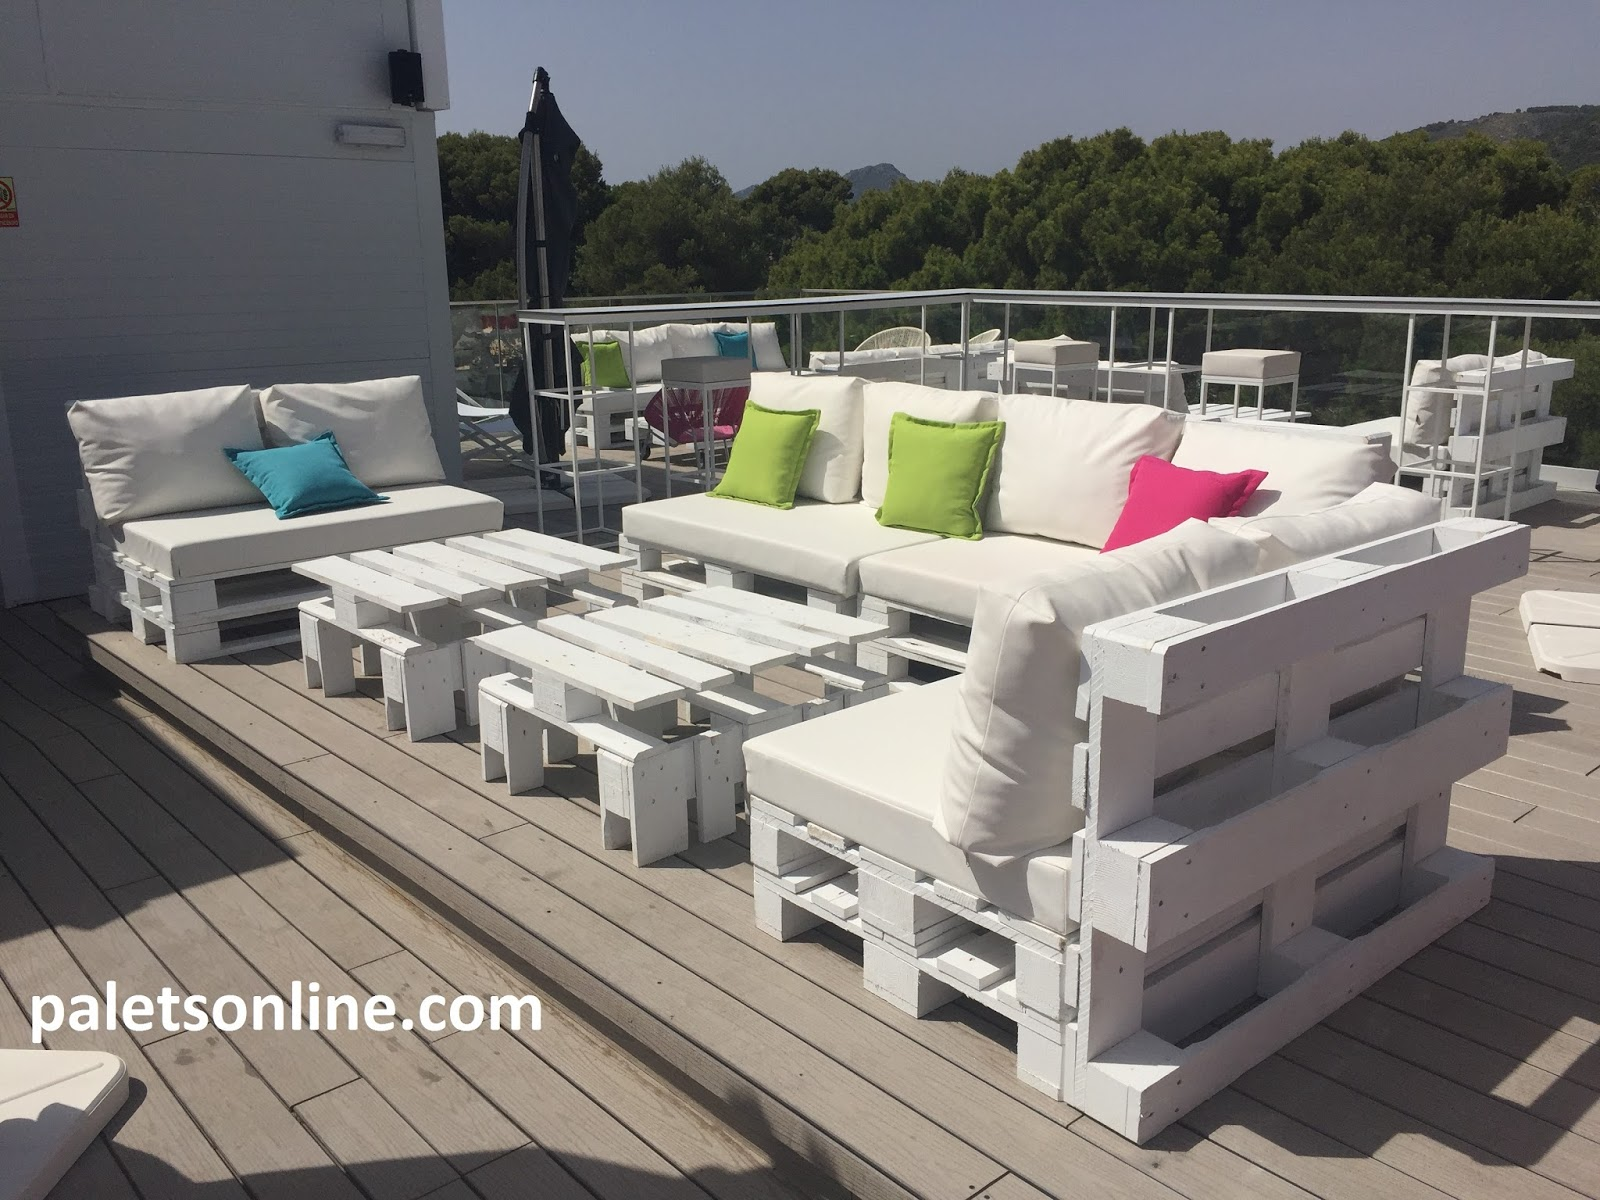 Muebles con palets decoraci n con palets - Muebles chill out ...